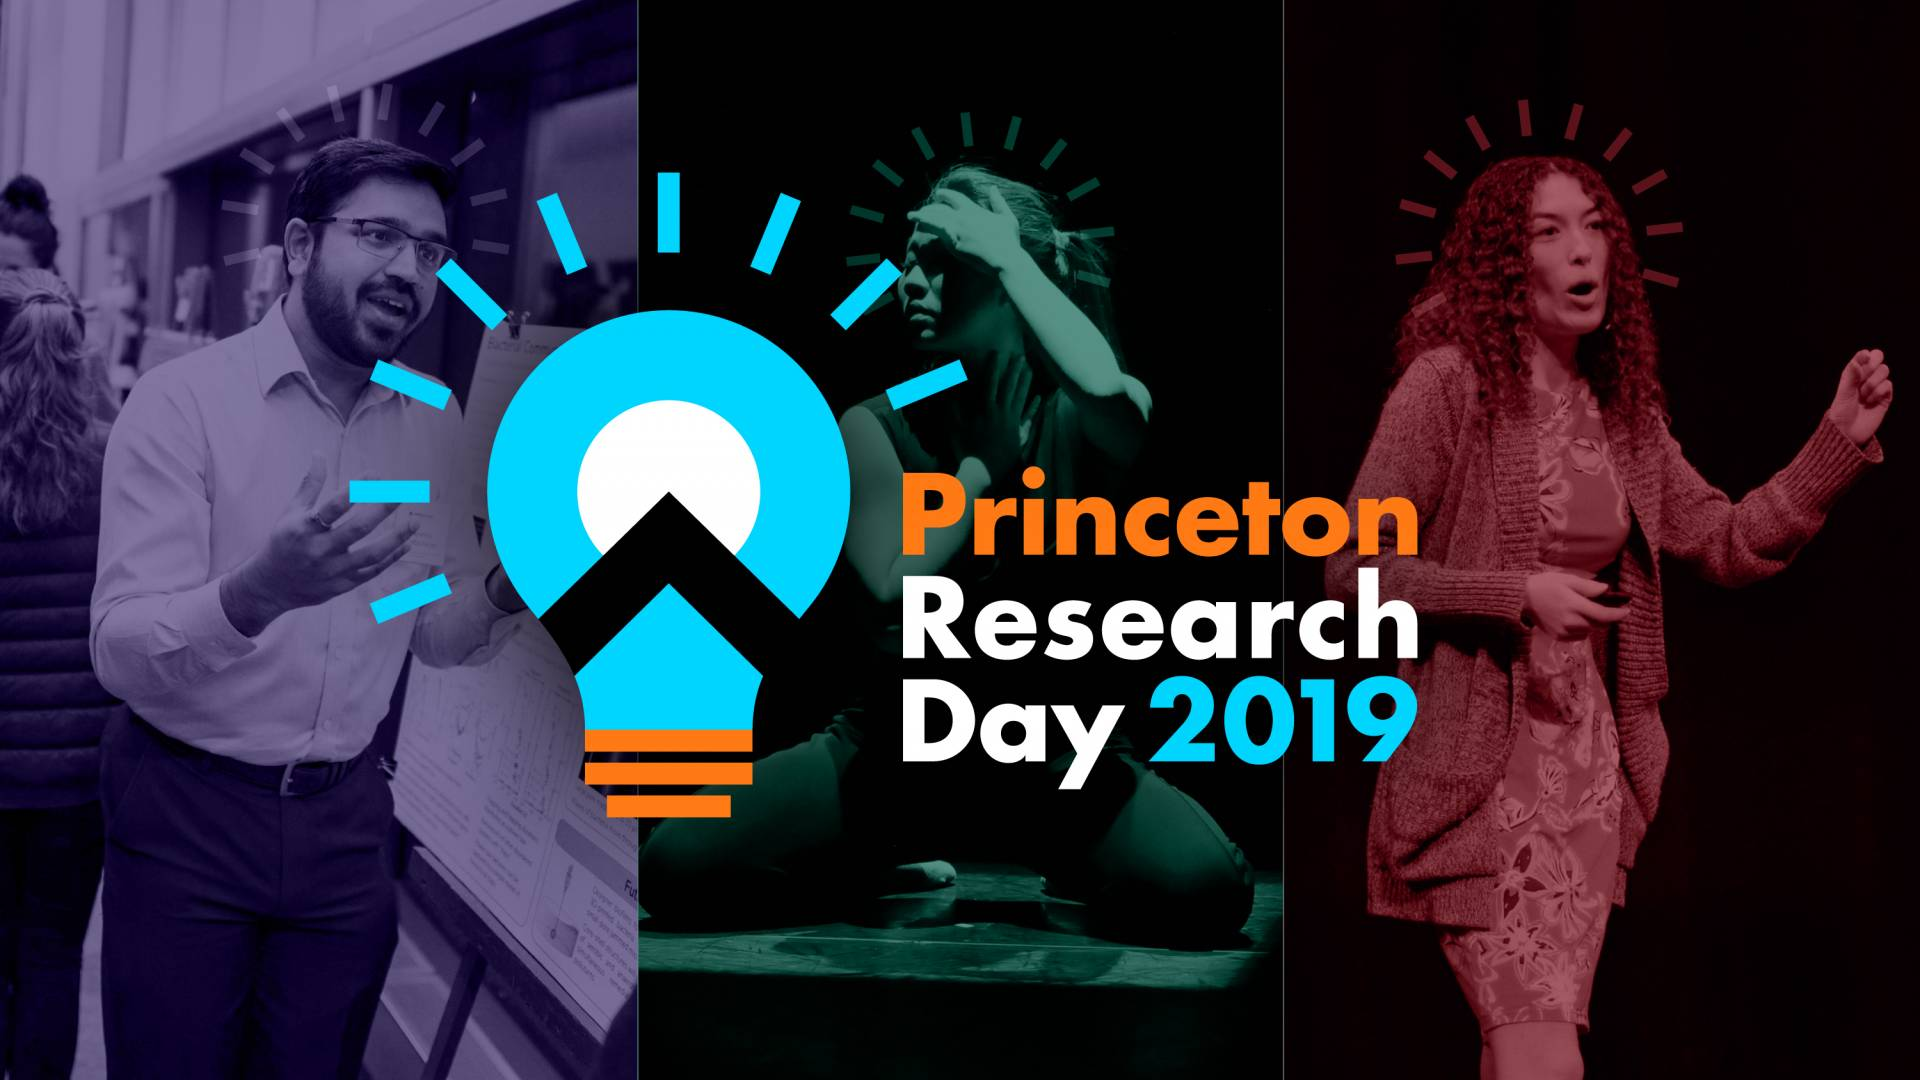 Three images of presenters with the Princeton Research Day 2019 logo overlaid on top of them